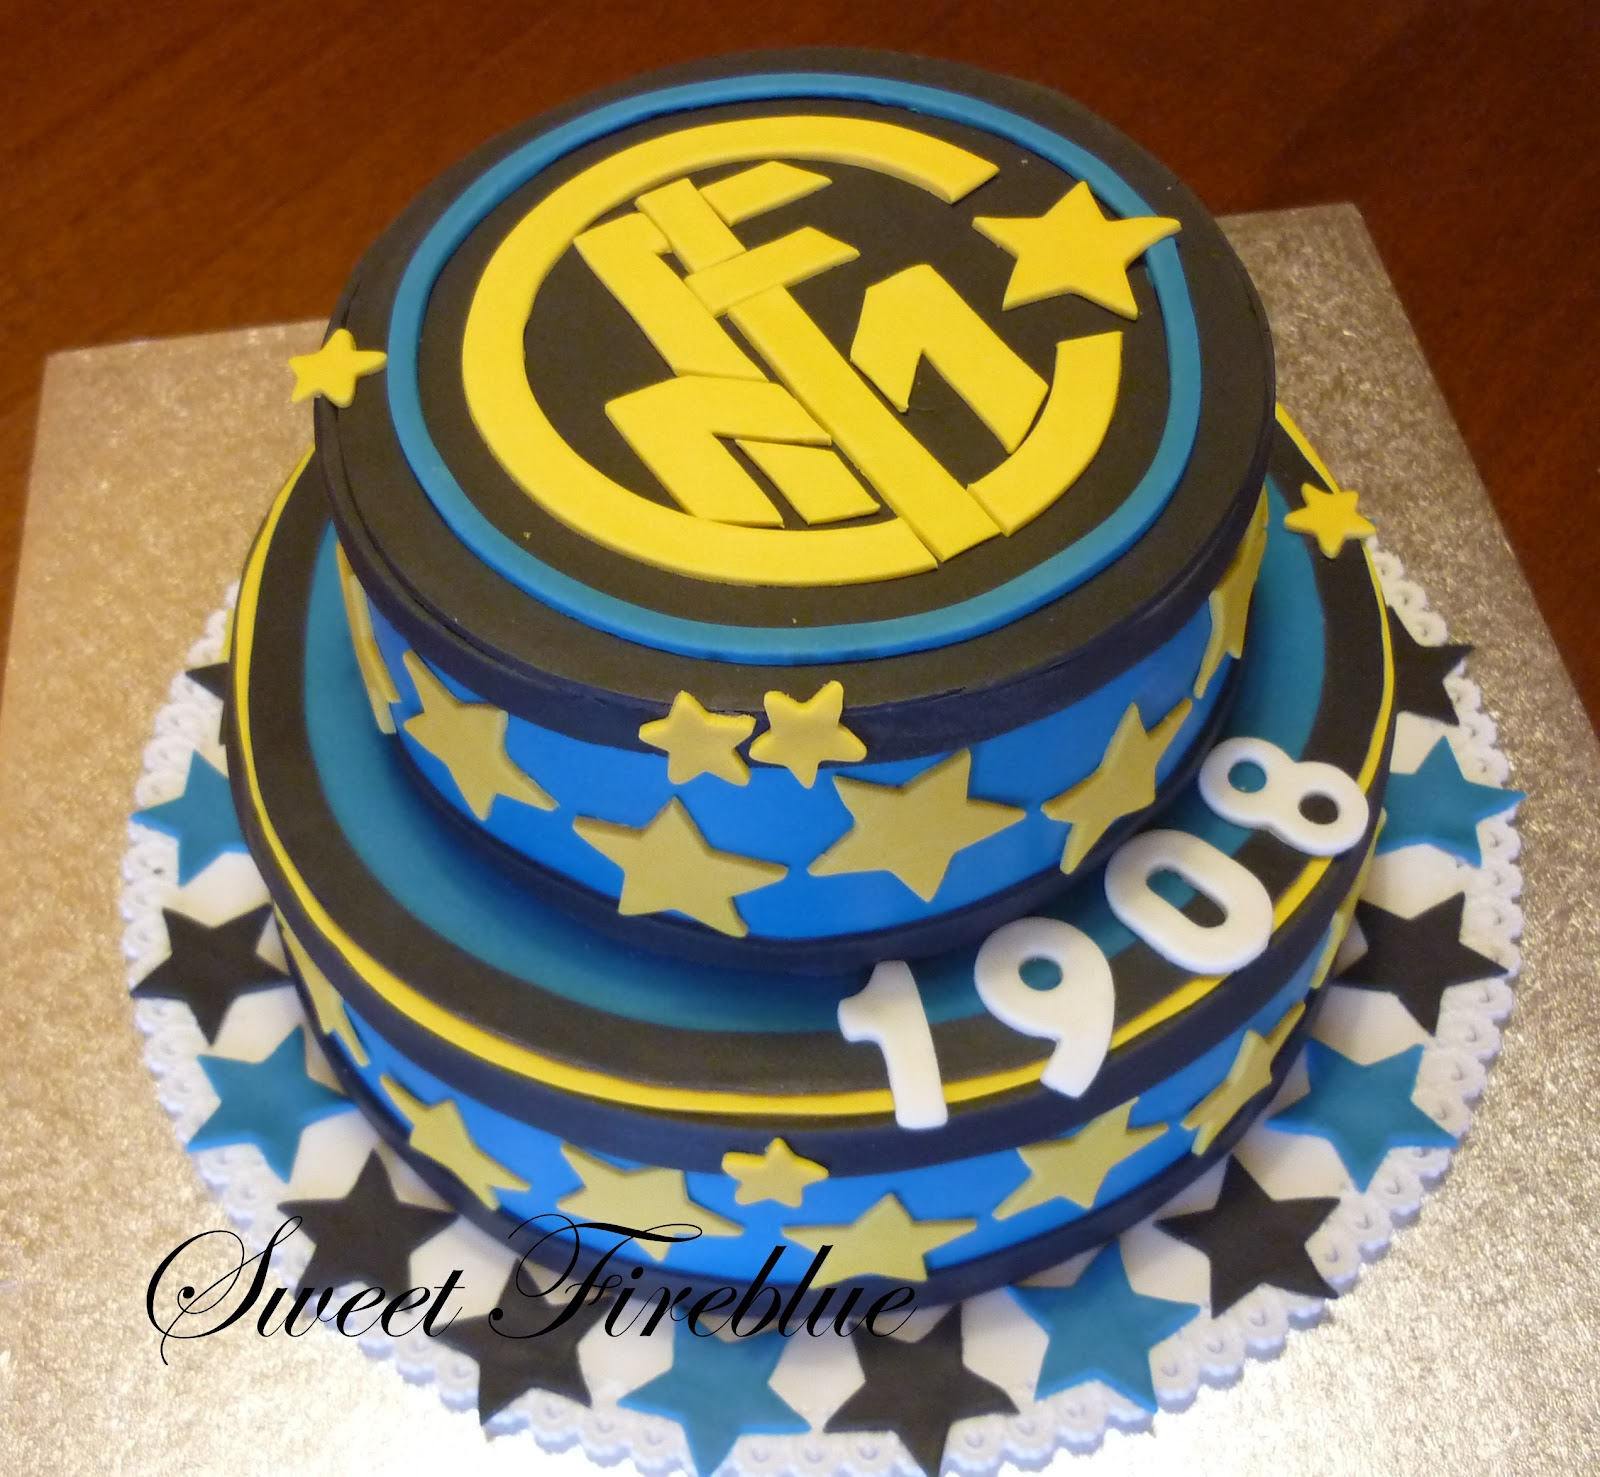 Sweet fireblue torta inter a due piani for Inter designing